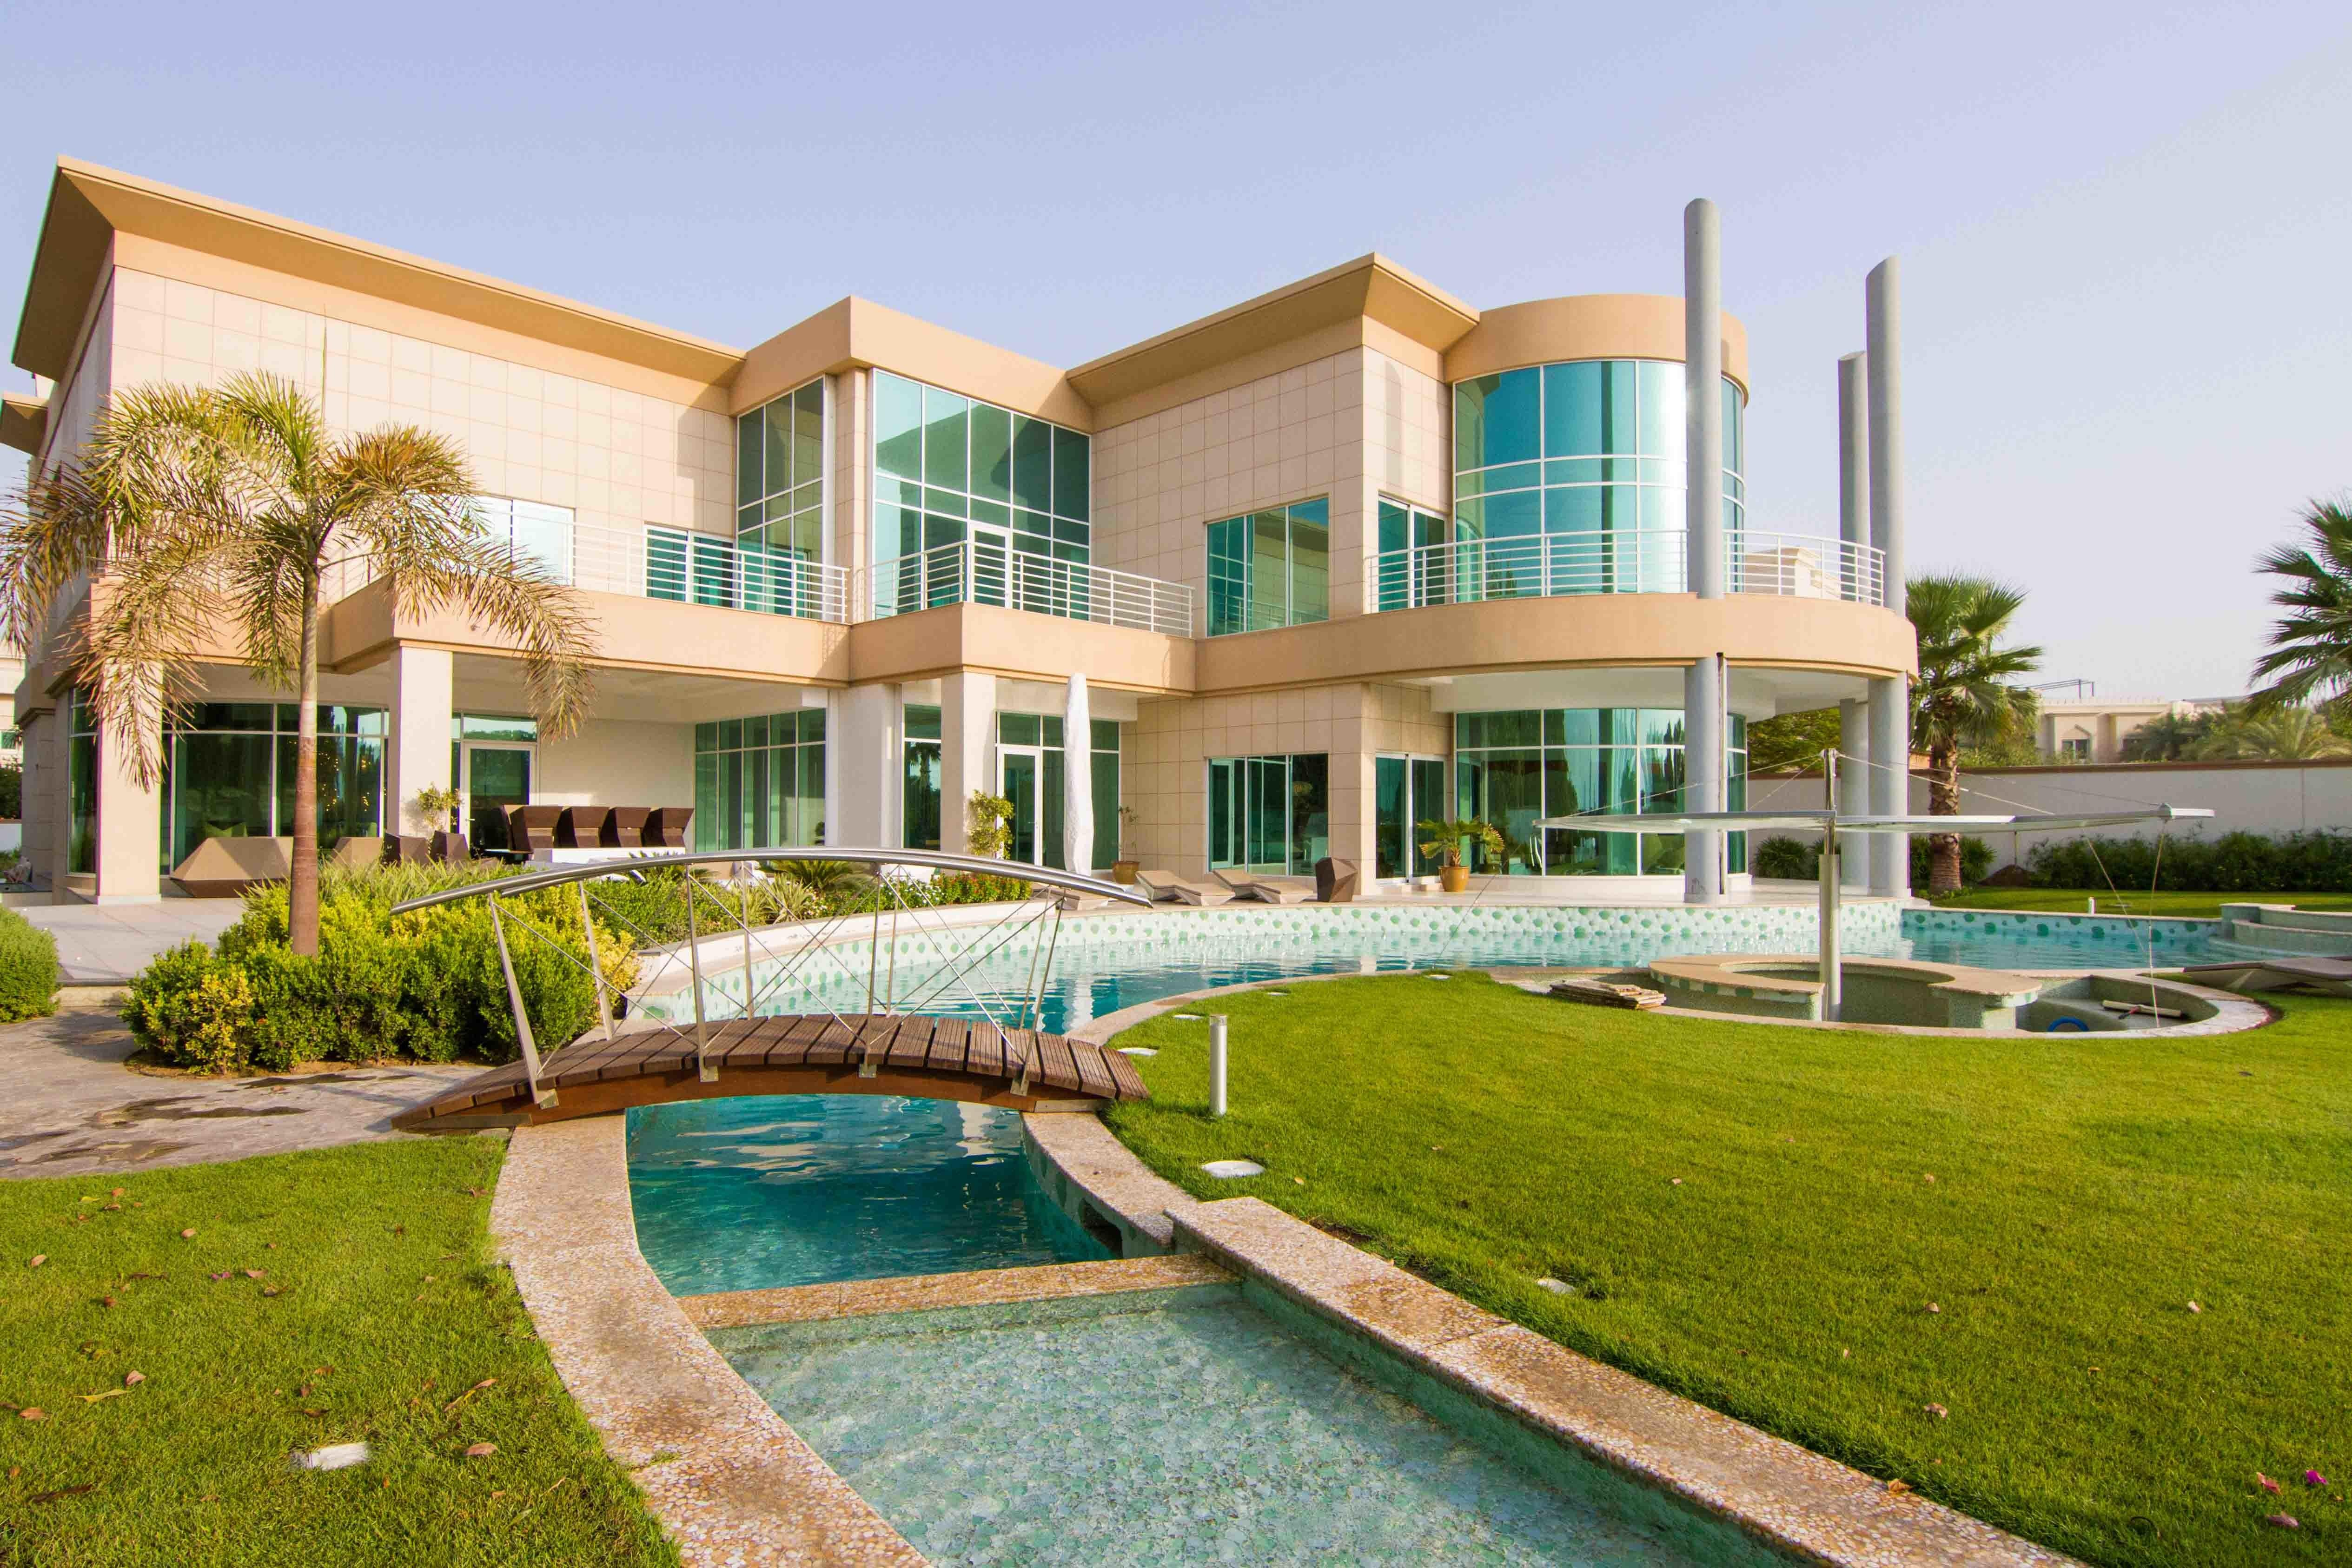 Emirates Hills Sector Aed 110 Million Wealth